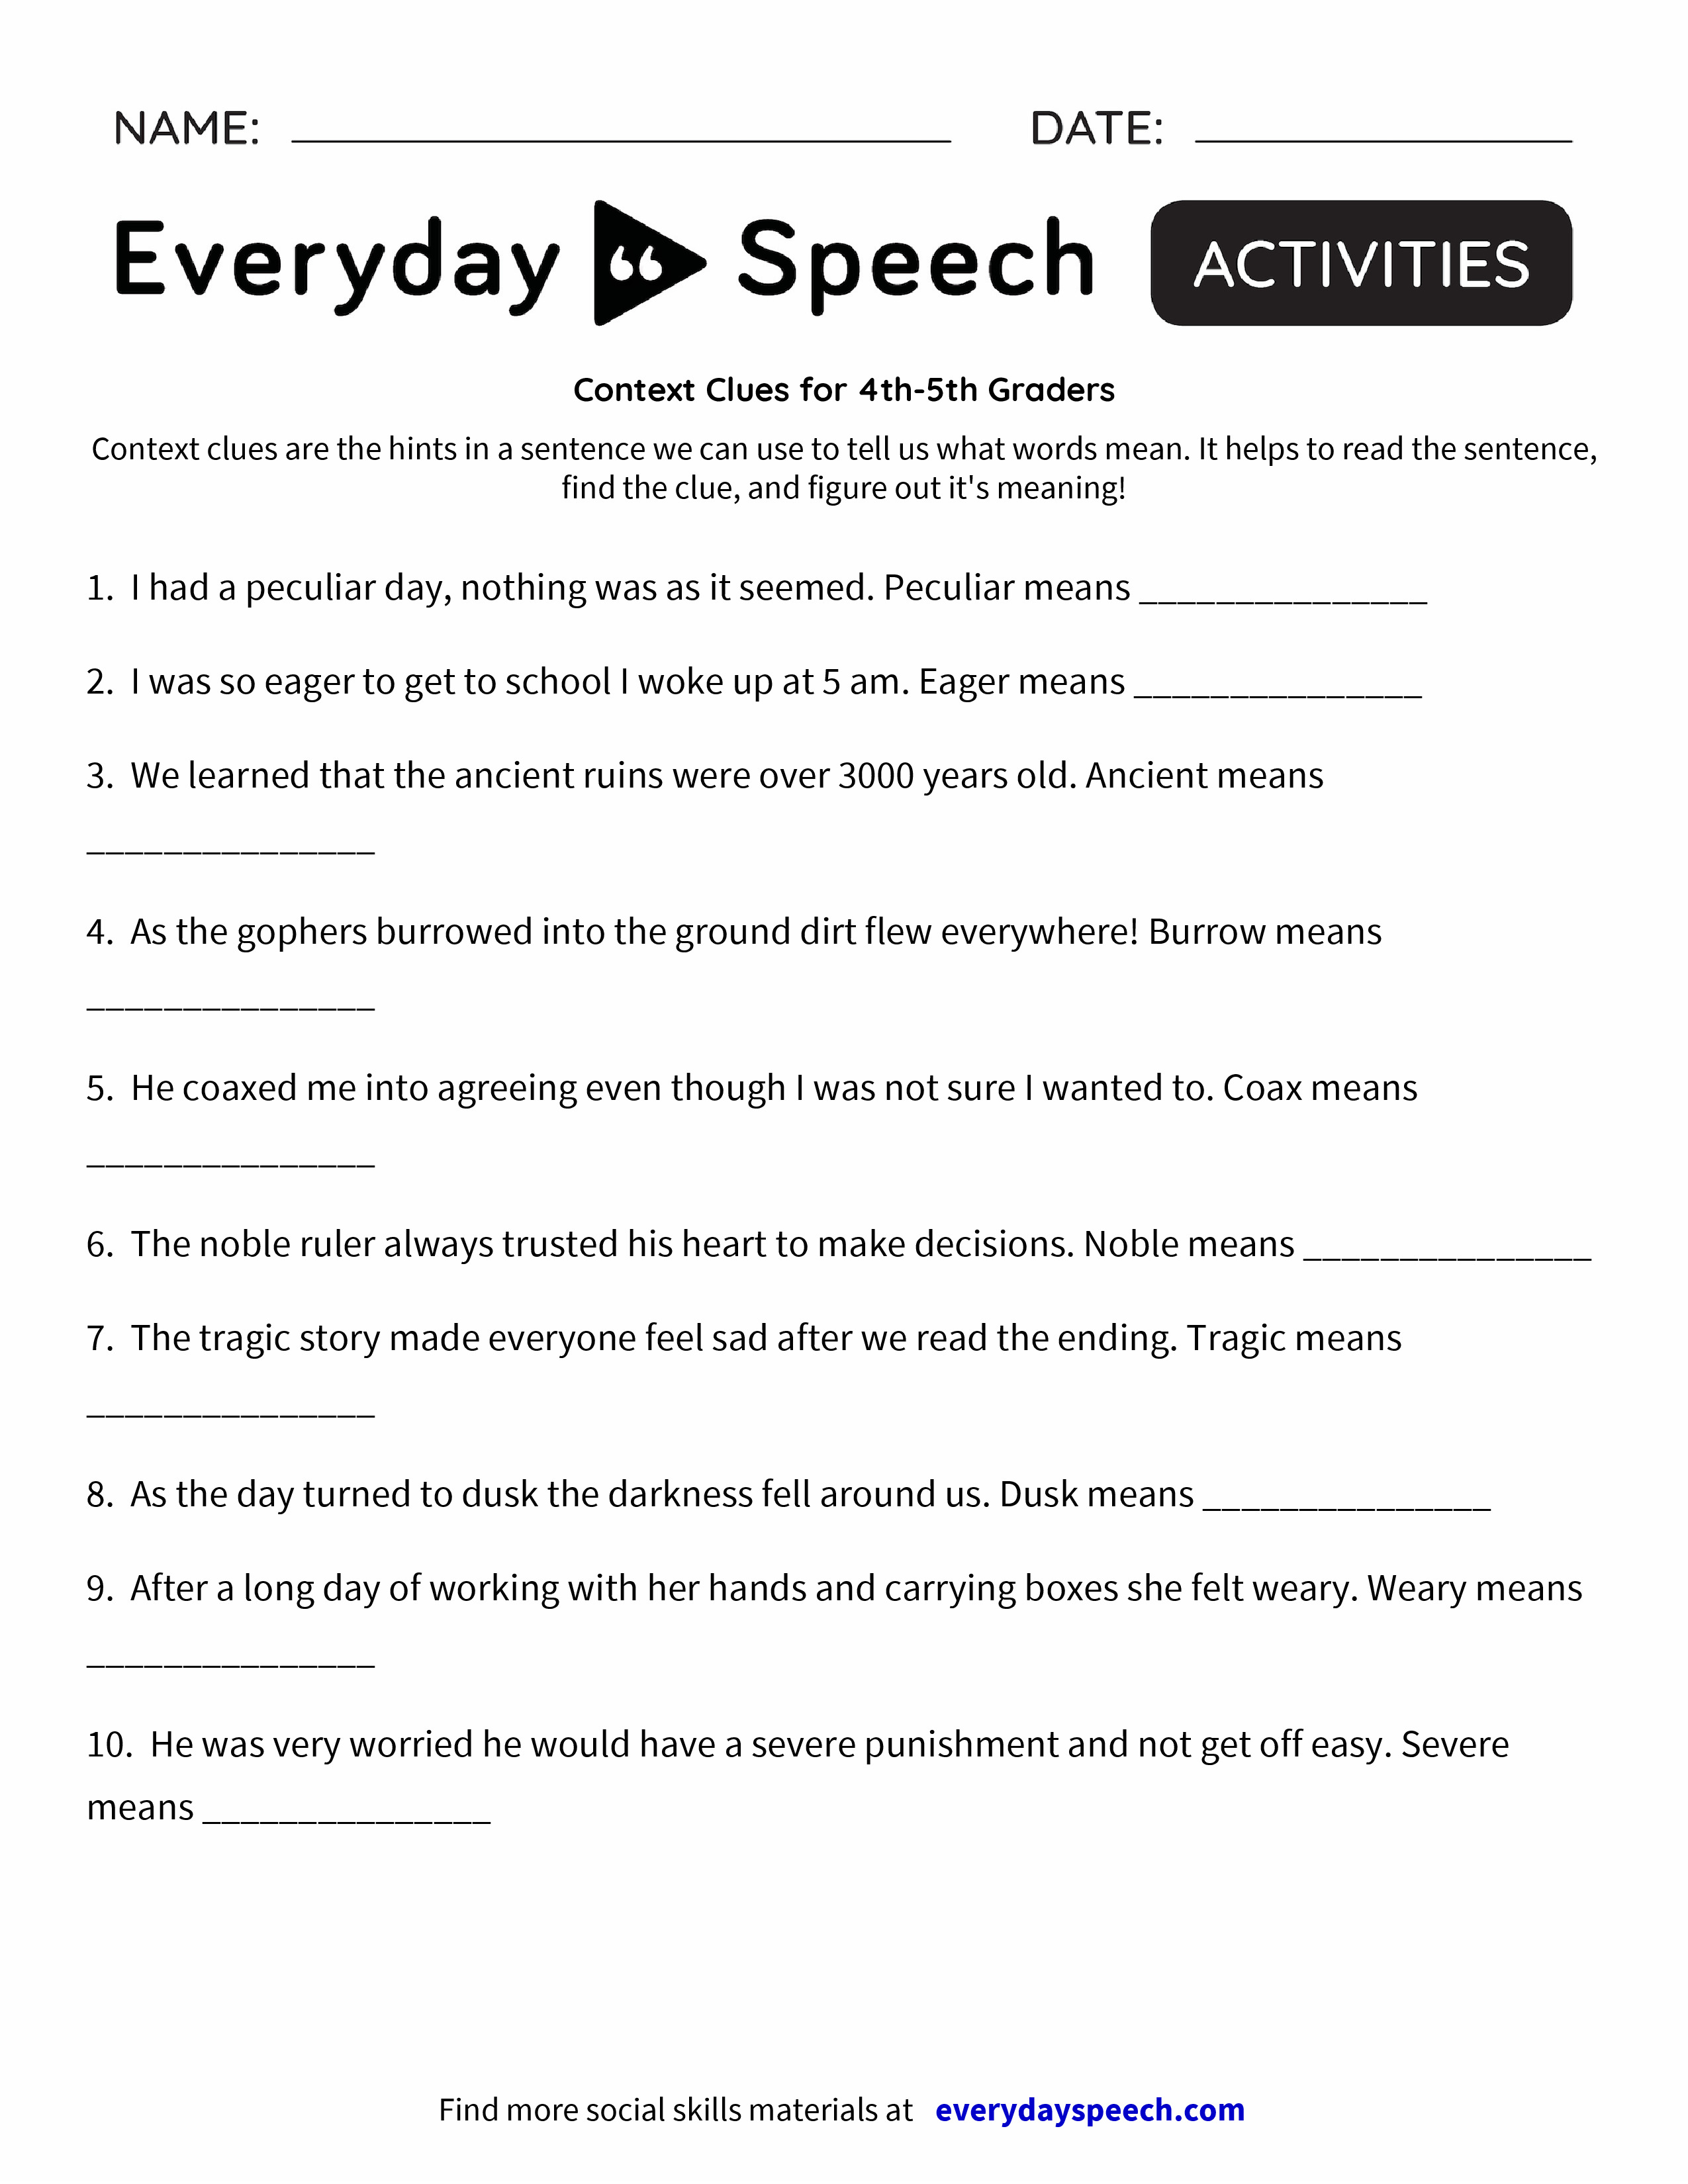 worksheet Worksheets For 5th Graders context clues worksheet 5th grade free worksheets library download c text 4th gr ders everyd y speech speech